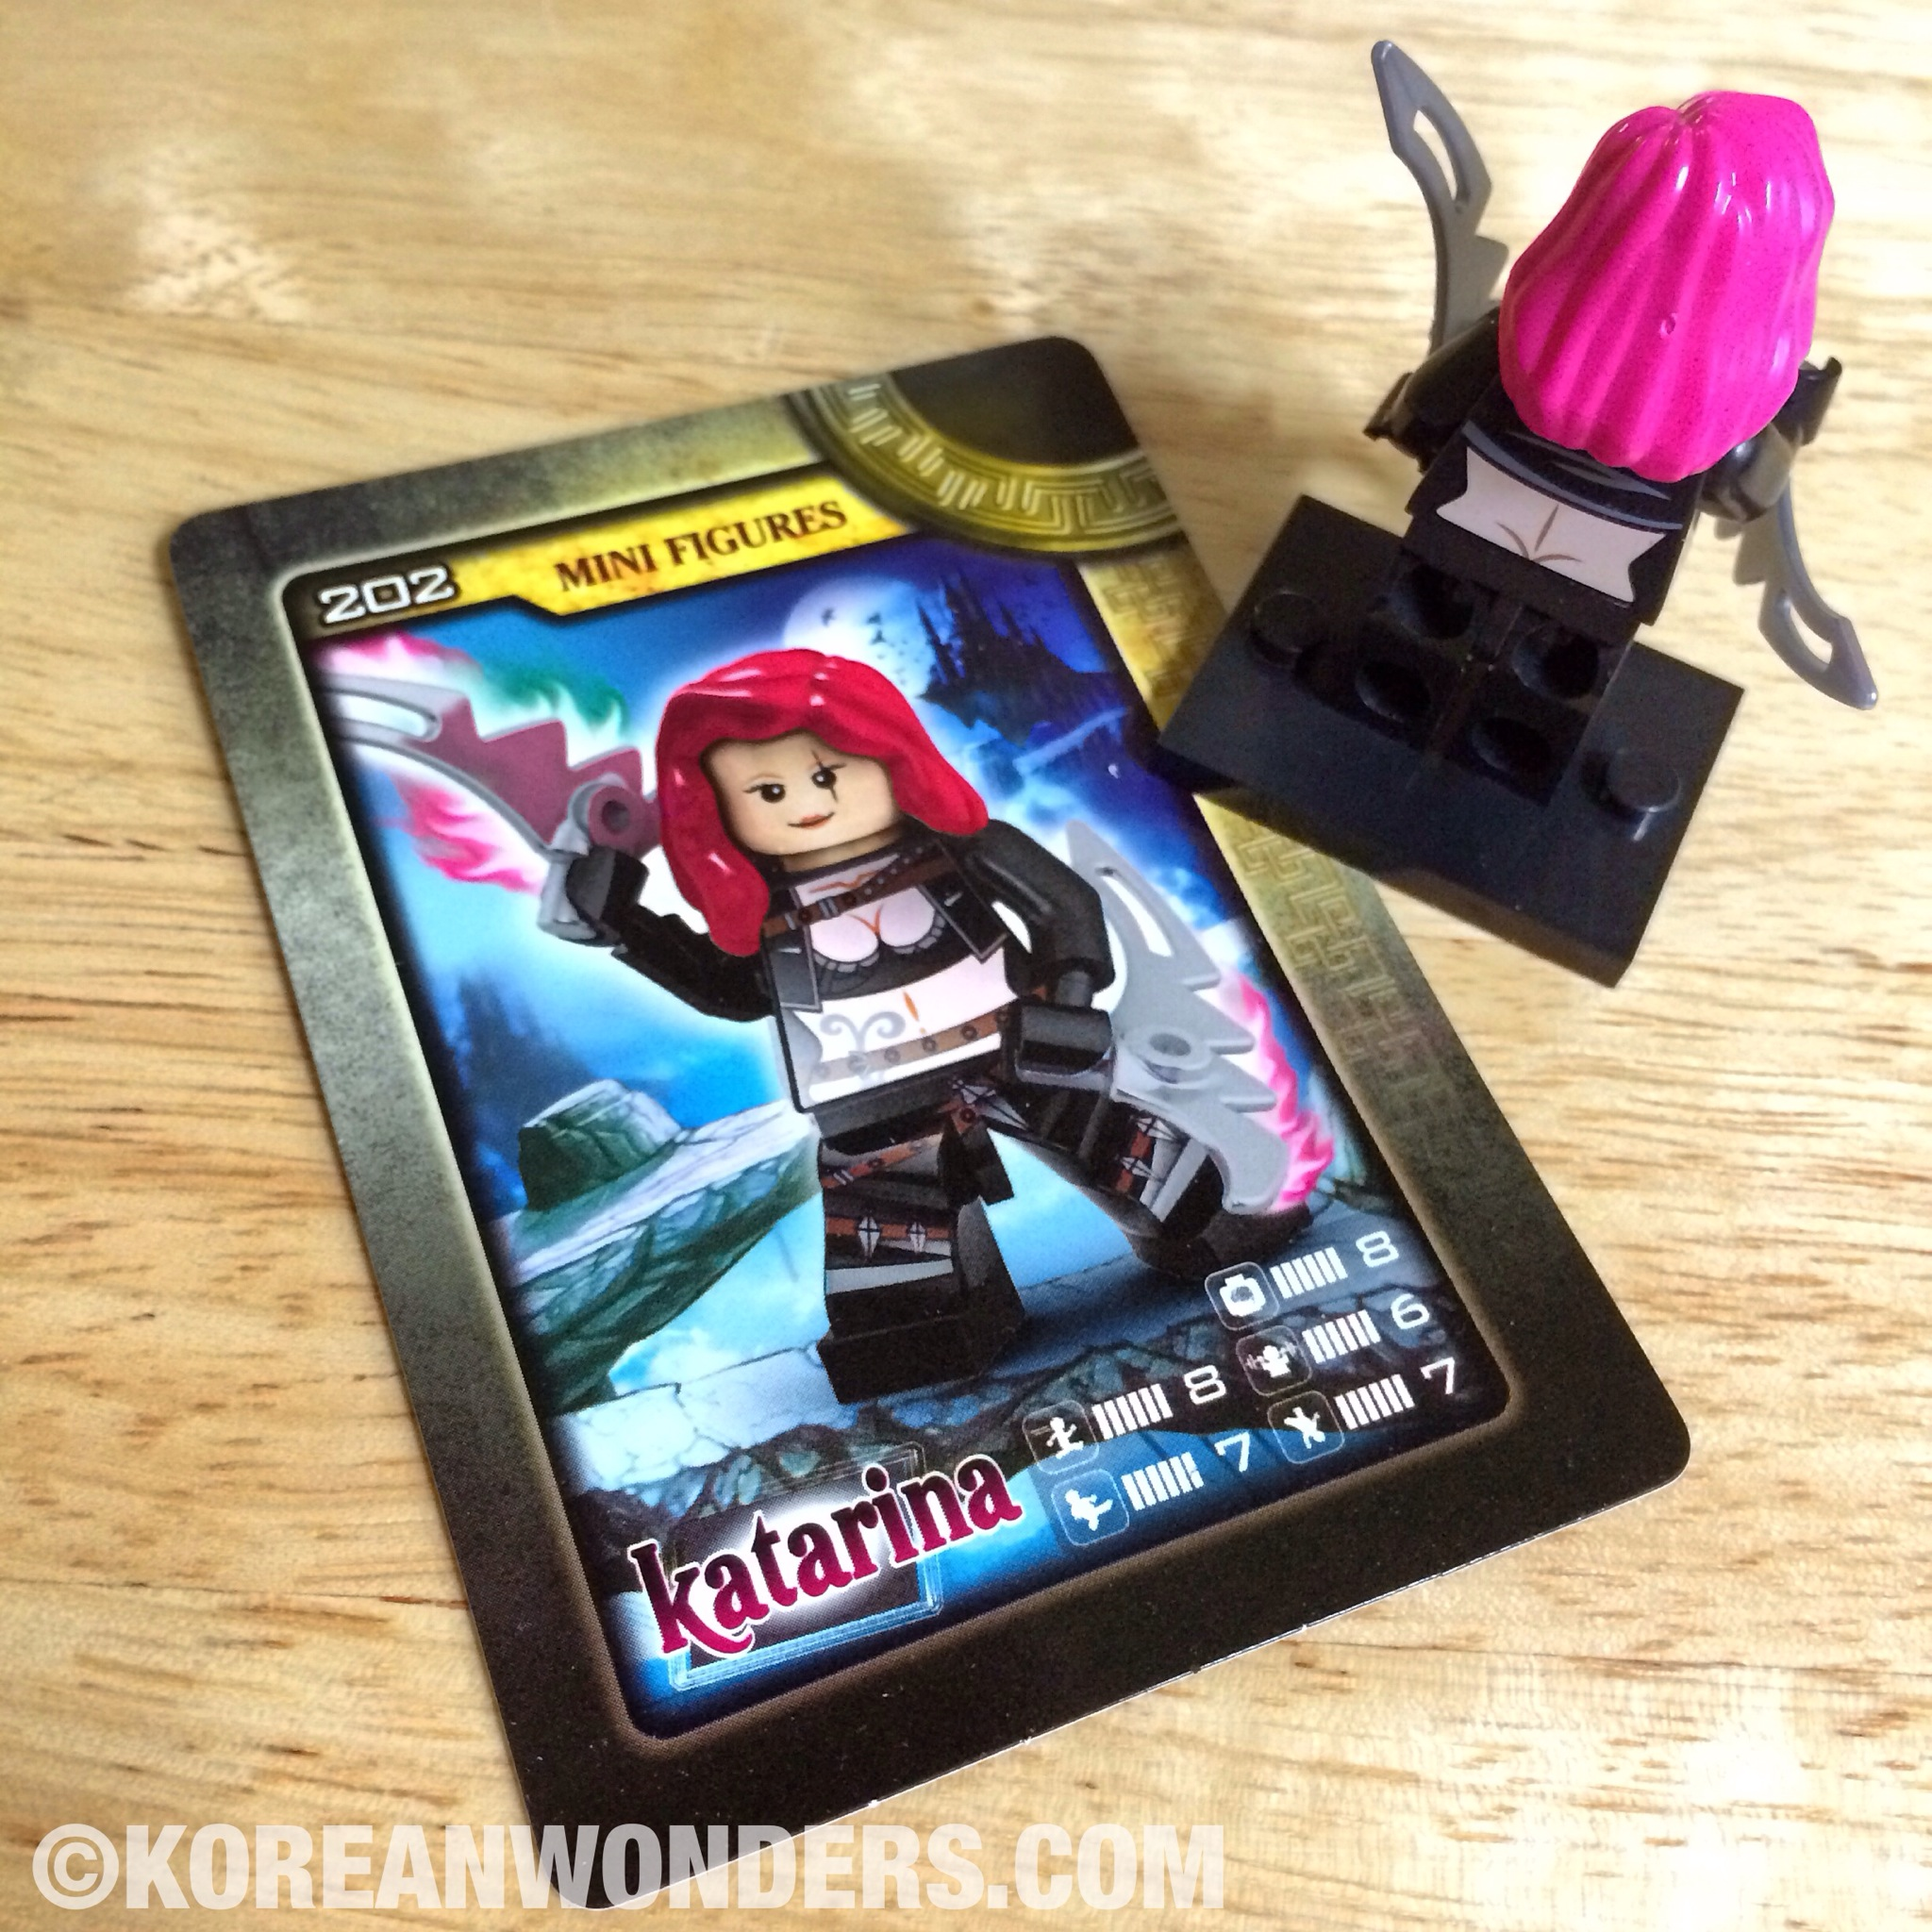 Katarina LOL Mini figure